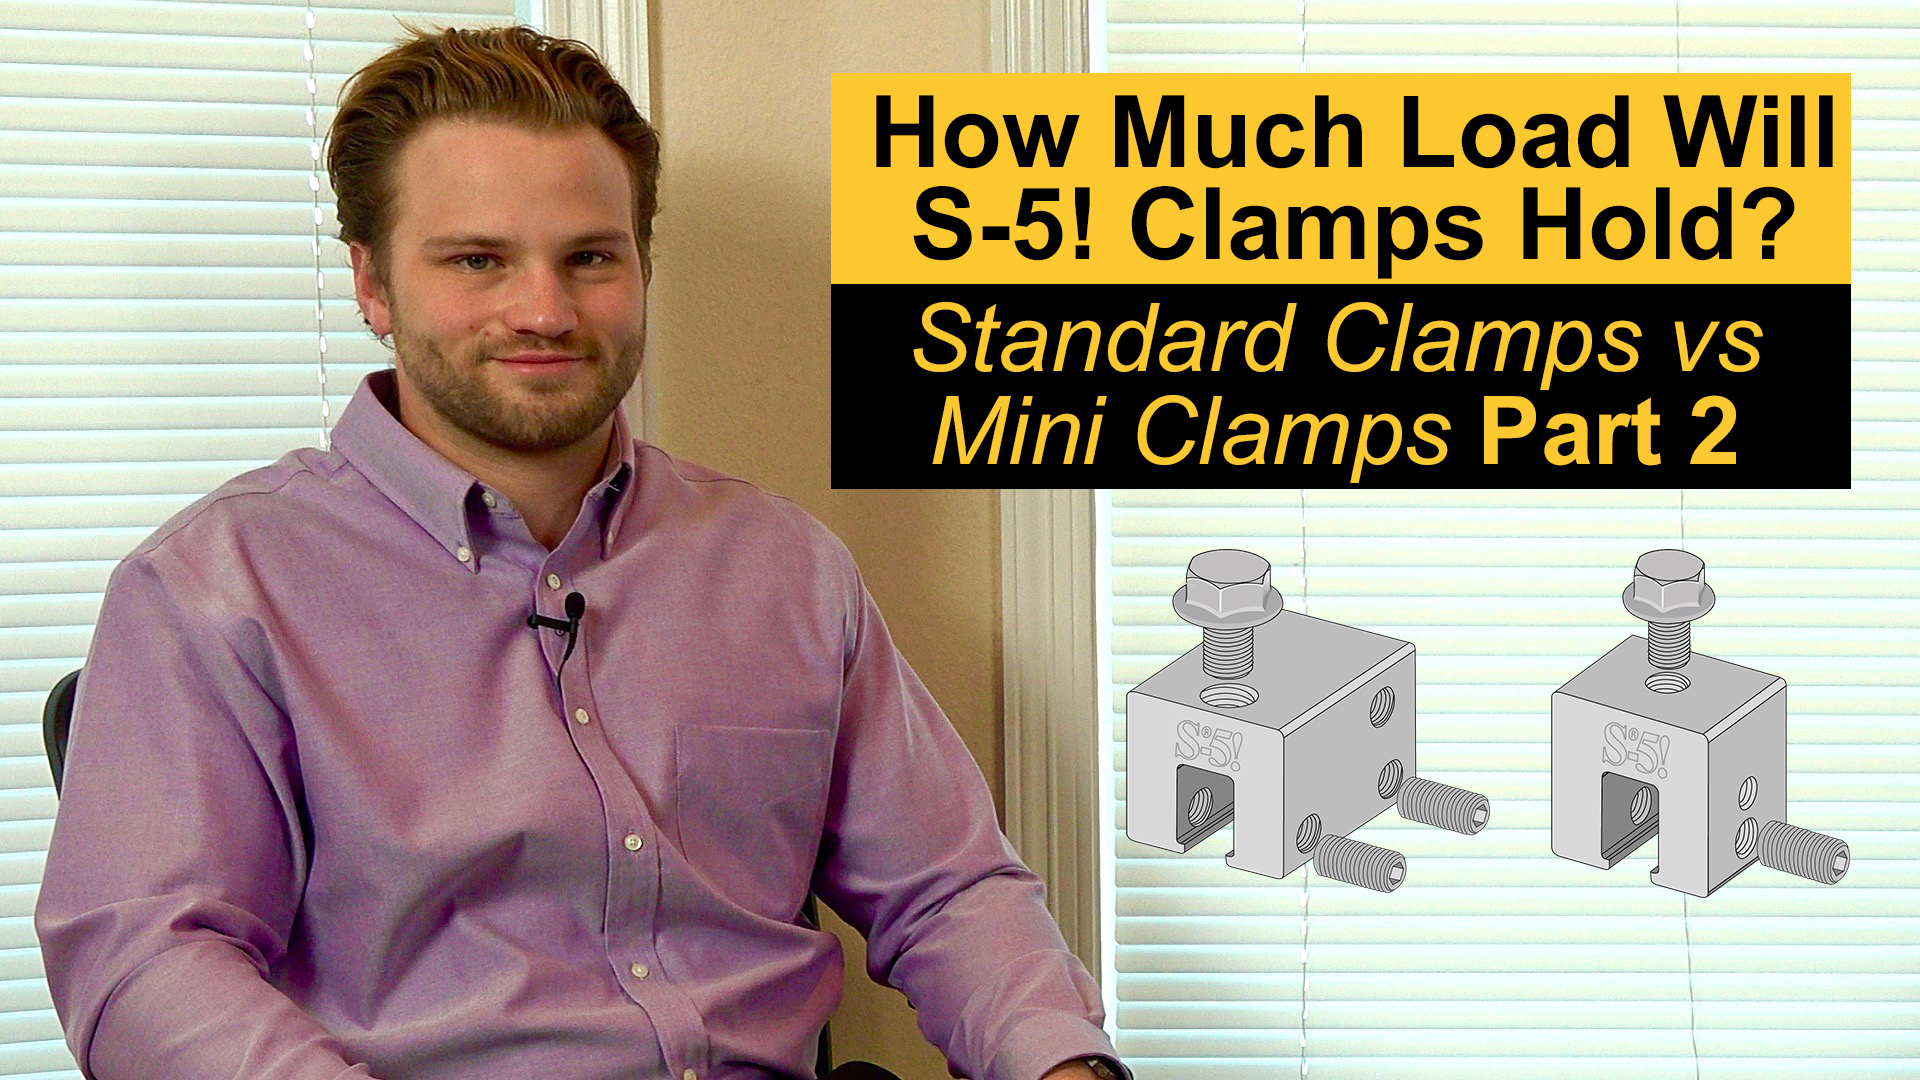 How Much Load Will S-5! Clamps Hold? Standard vs Mini Clamps